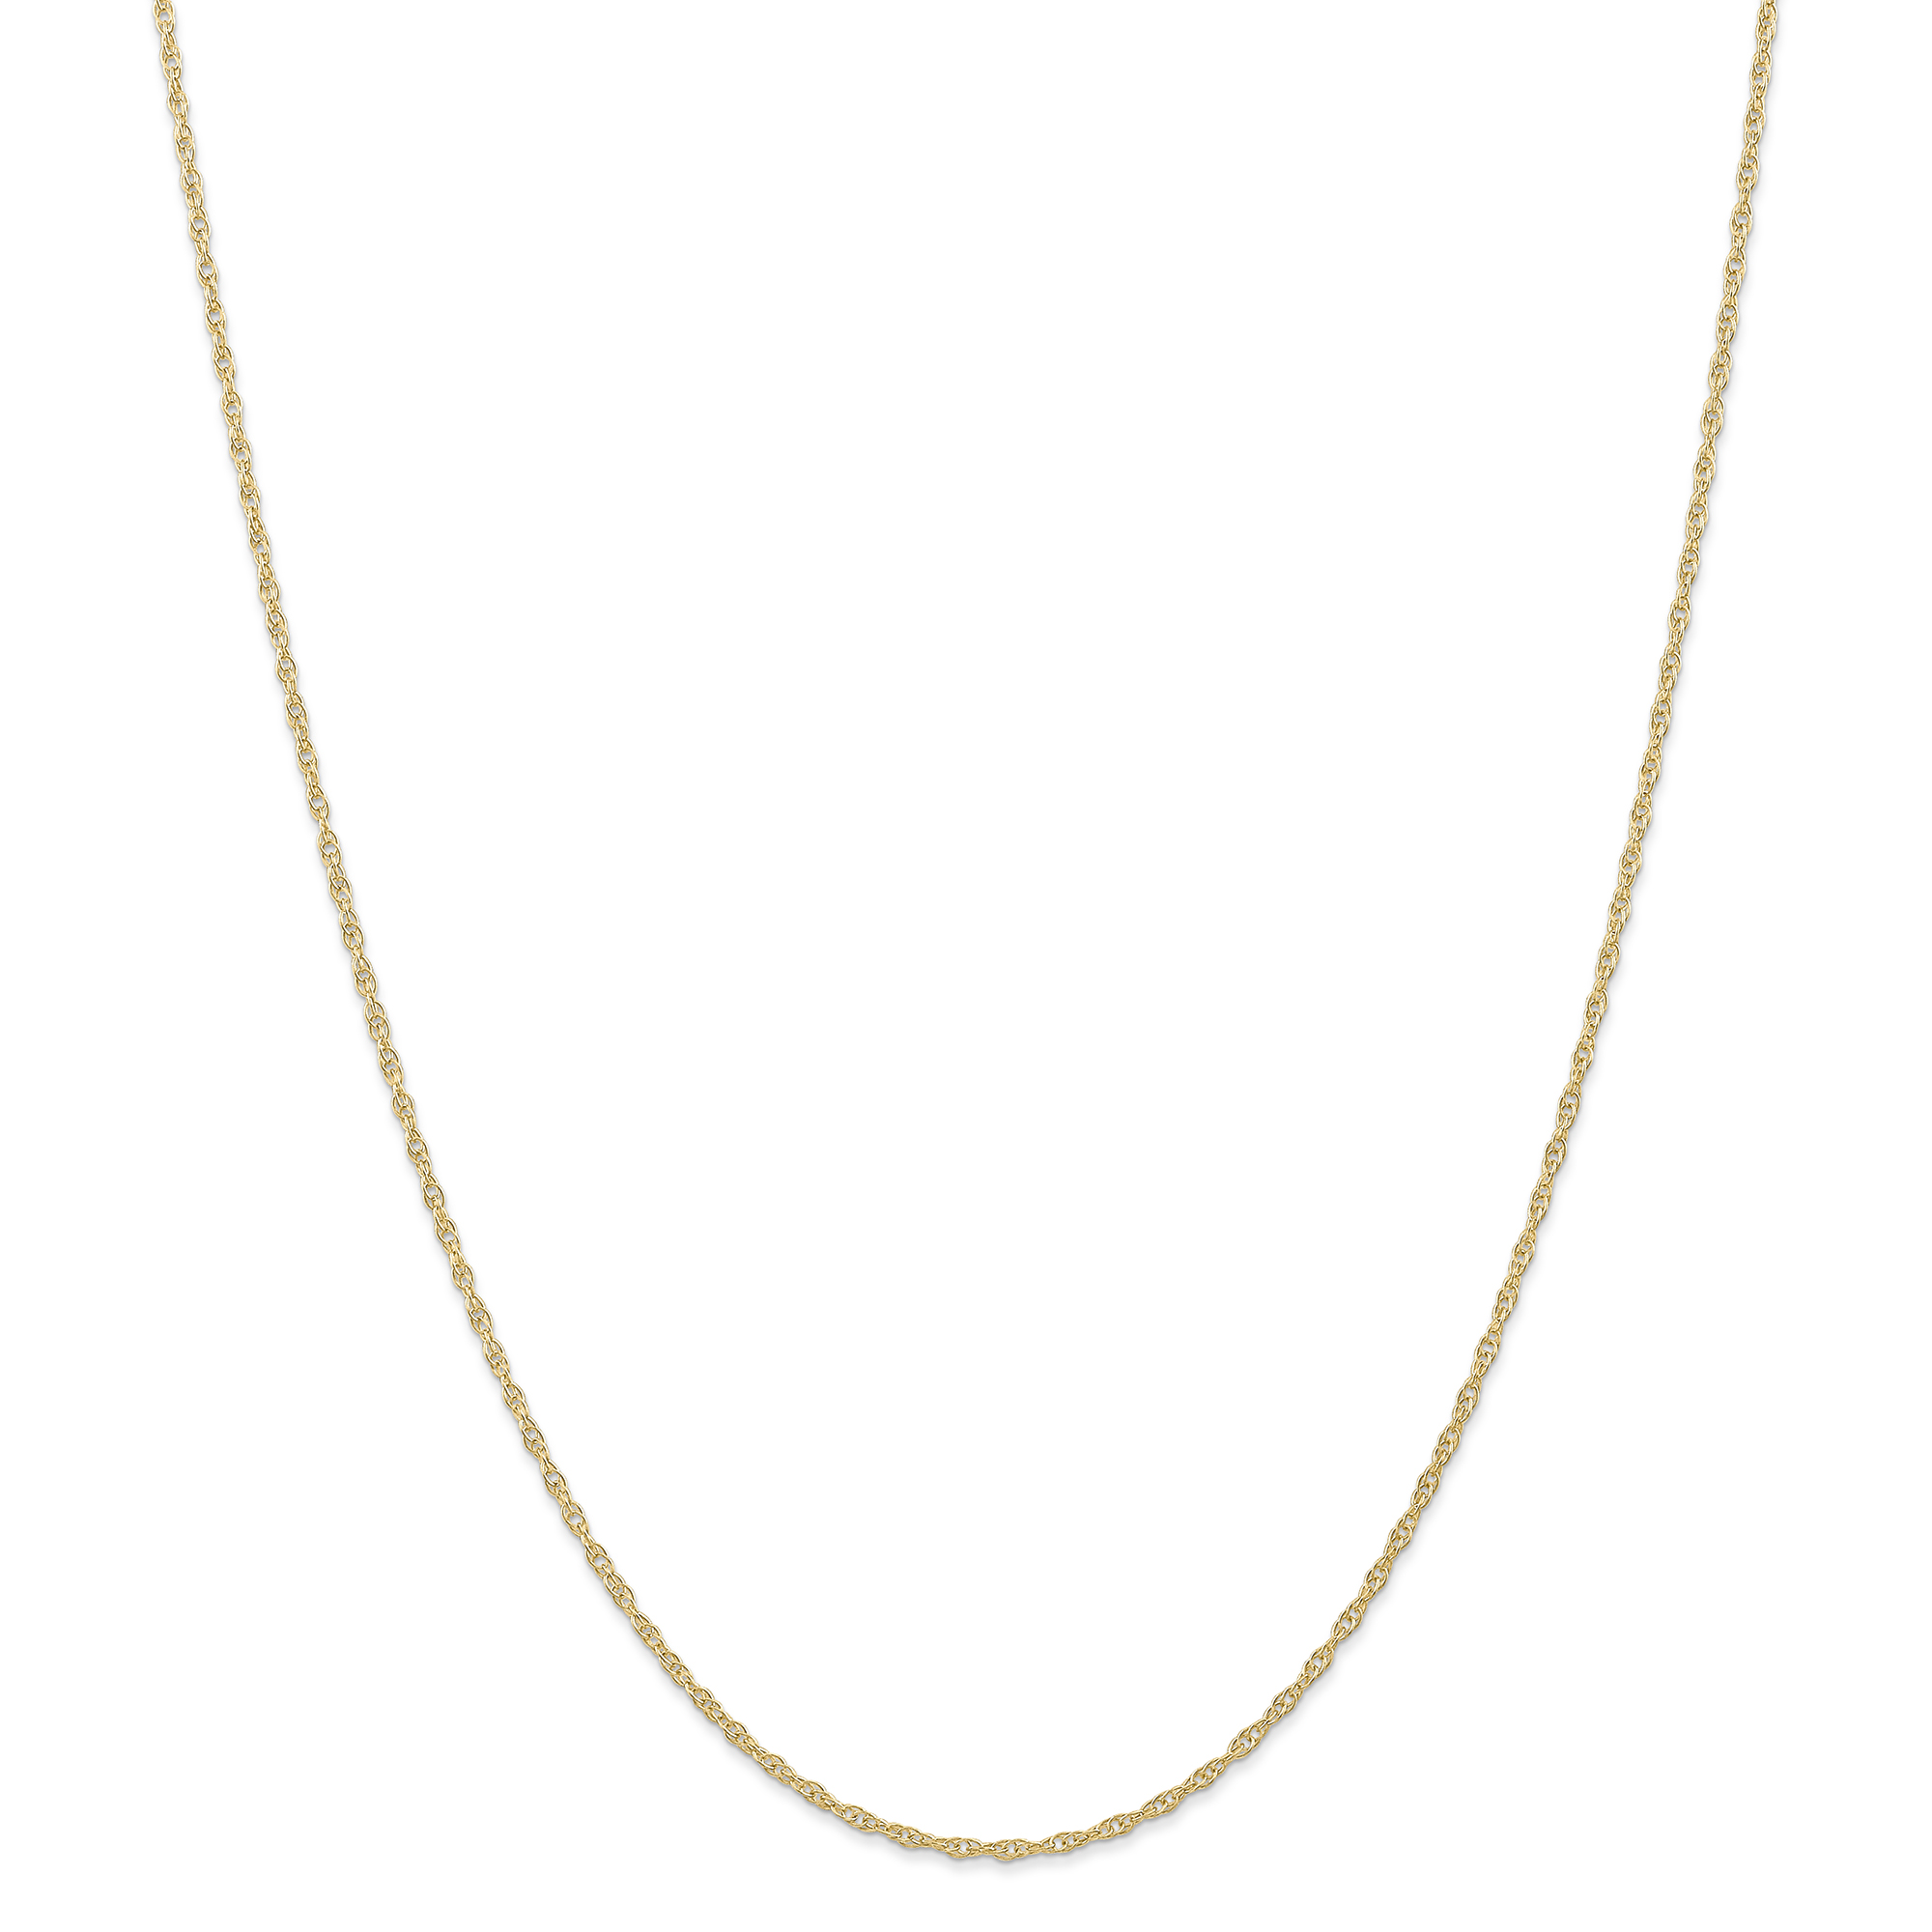 Roy Rose Jewelry 14K Yellow Gold 1.35mm Carded Cable Rope Chain Necklace ~ Length 24'' inches